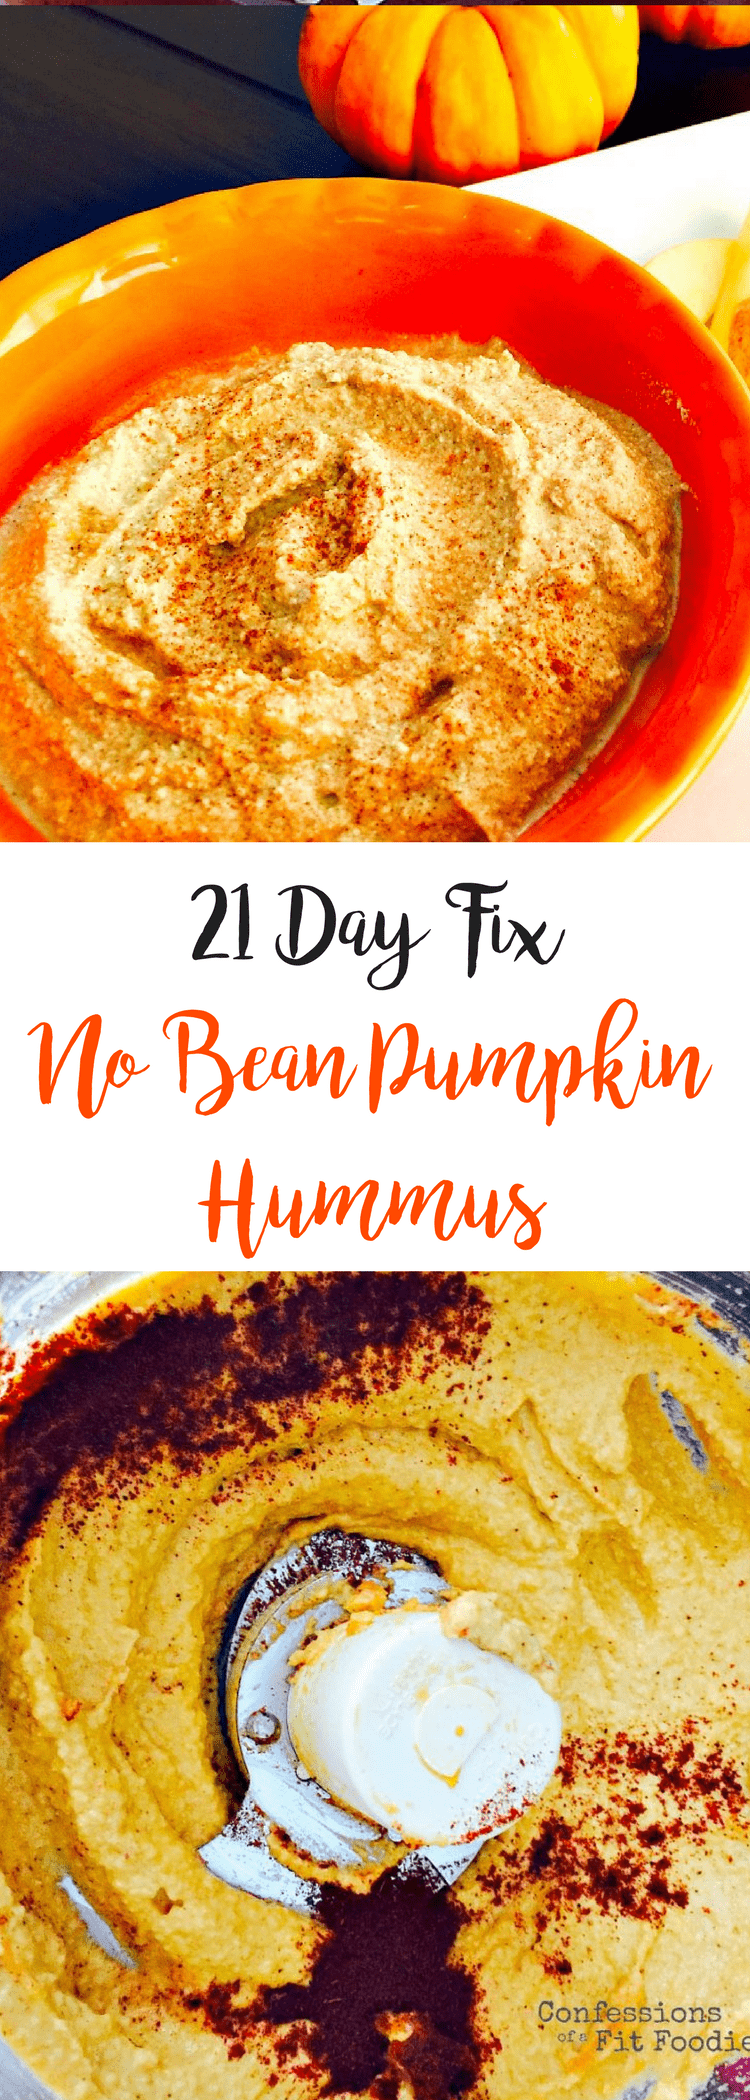 No Bean Pumpkin Hummus {21 Day Fix} | Confessions of a Fit Foodie